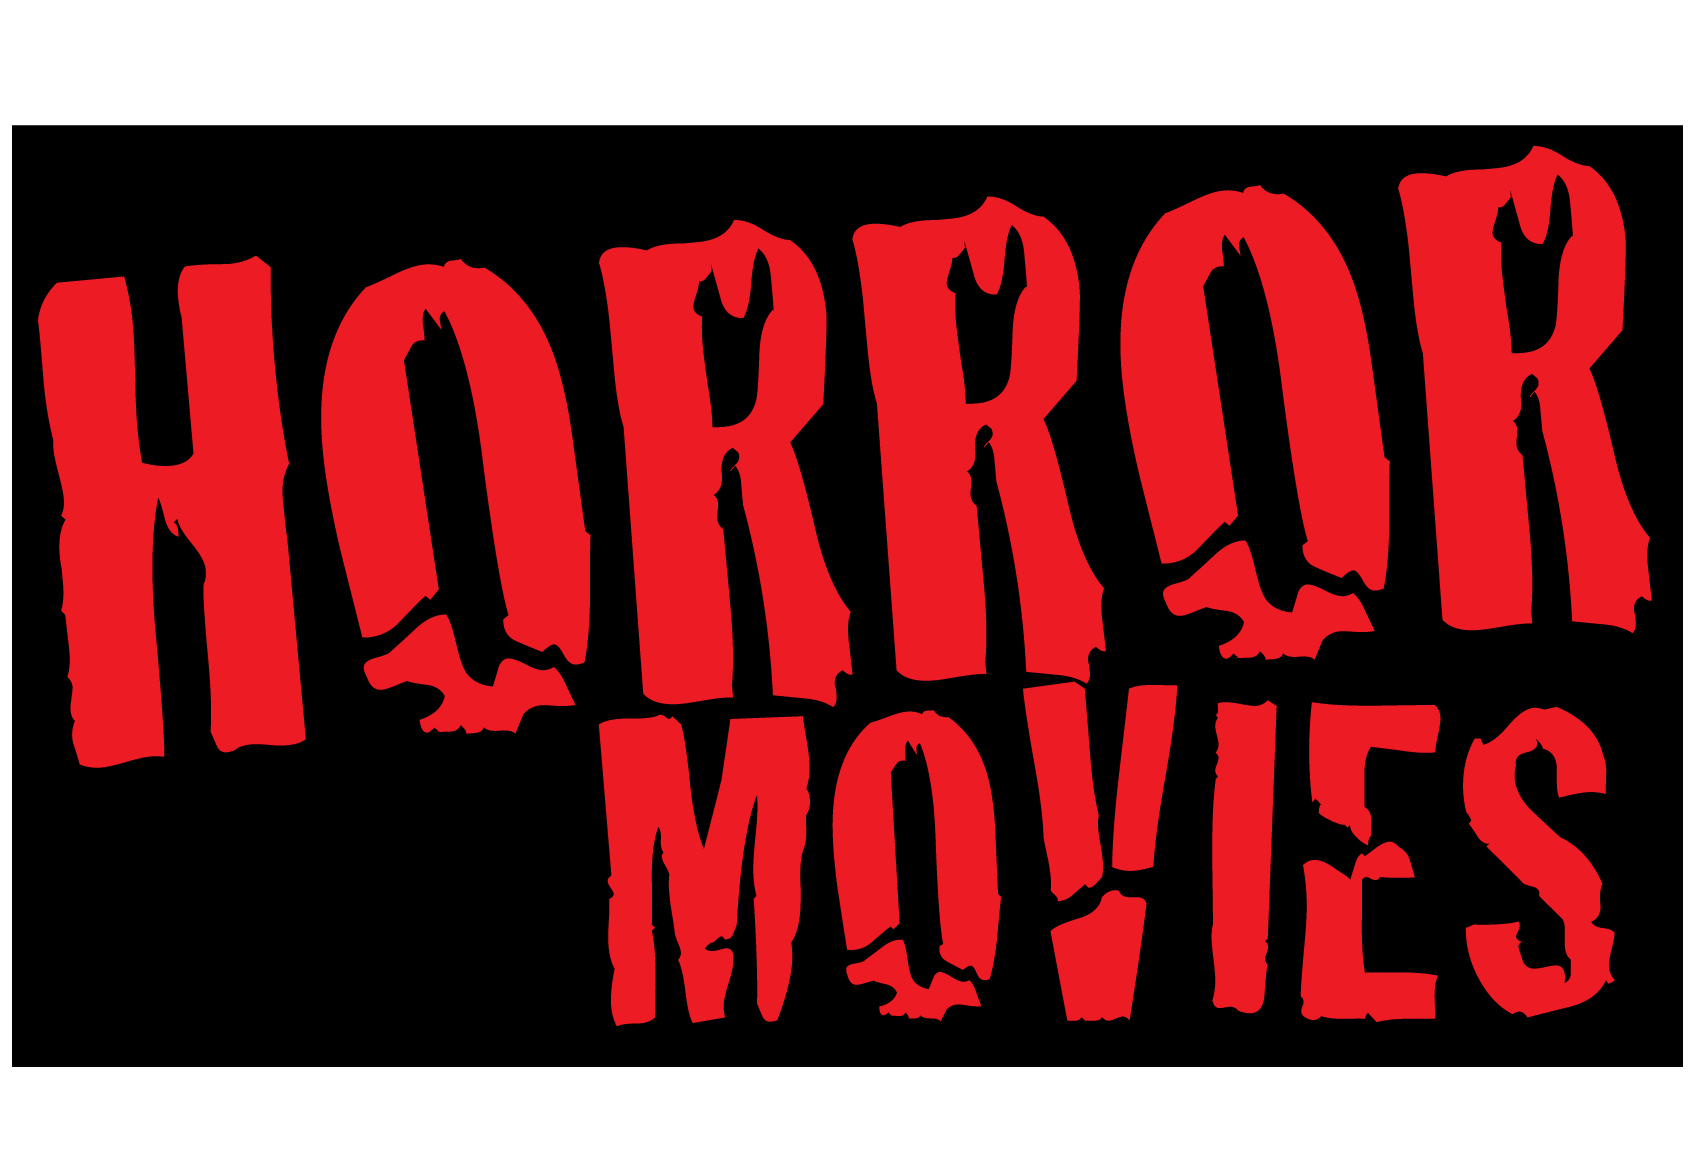 catching up on horror reviews before october fatpie42